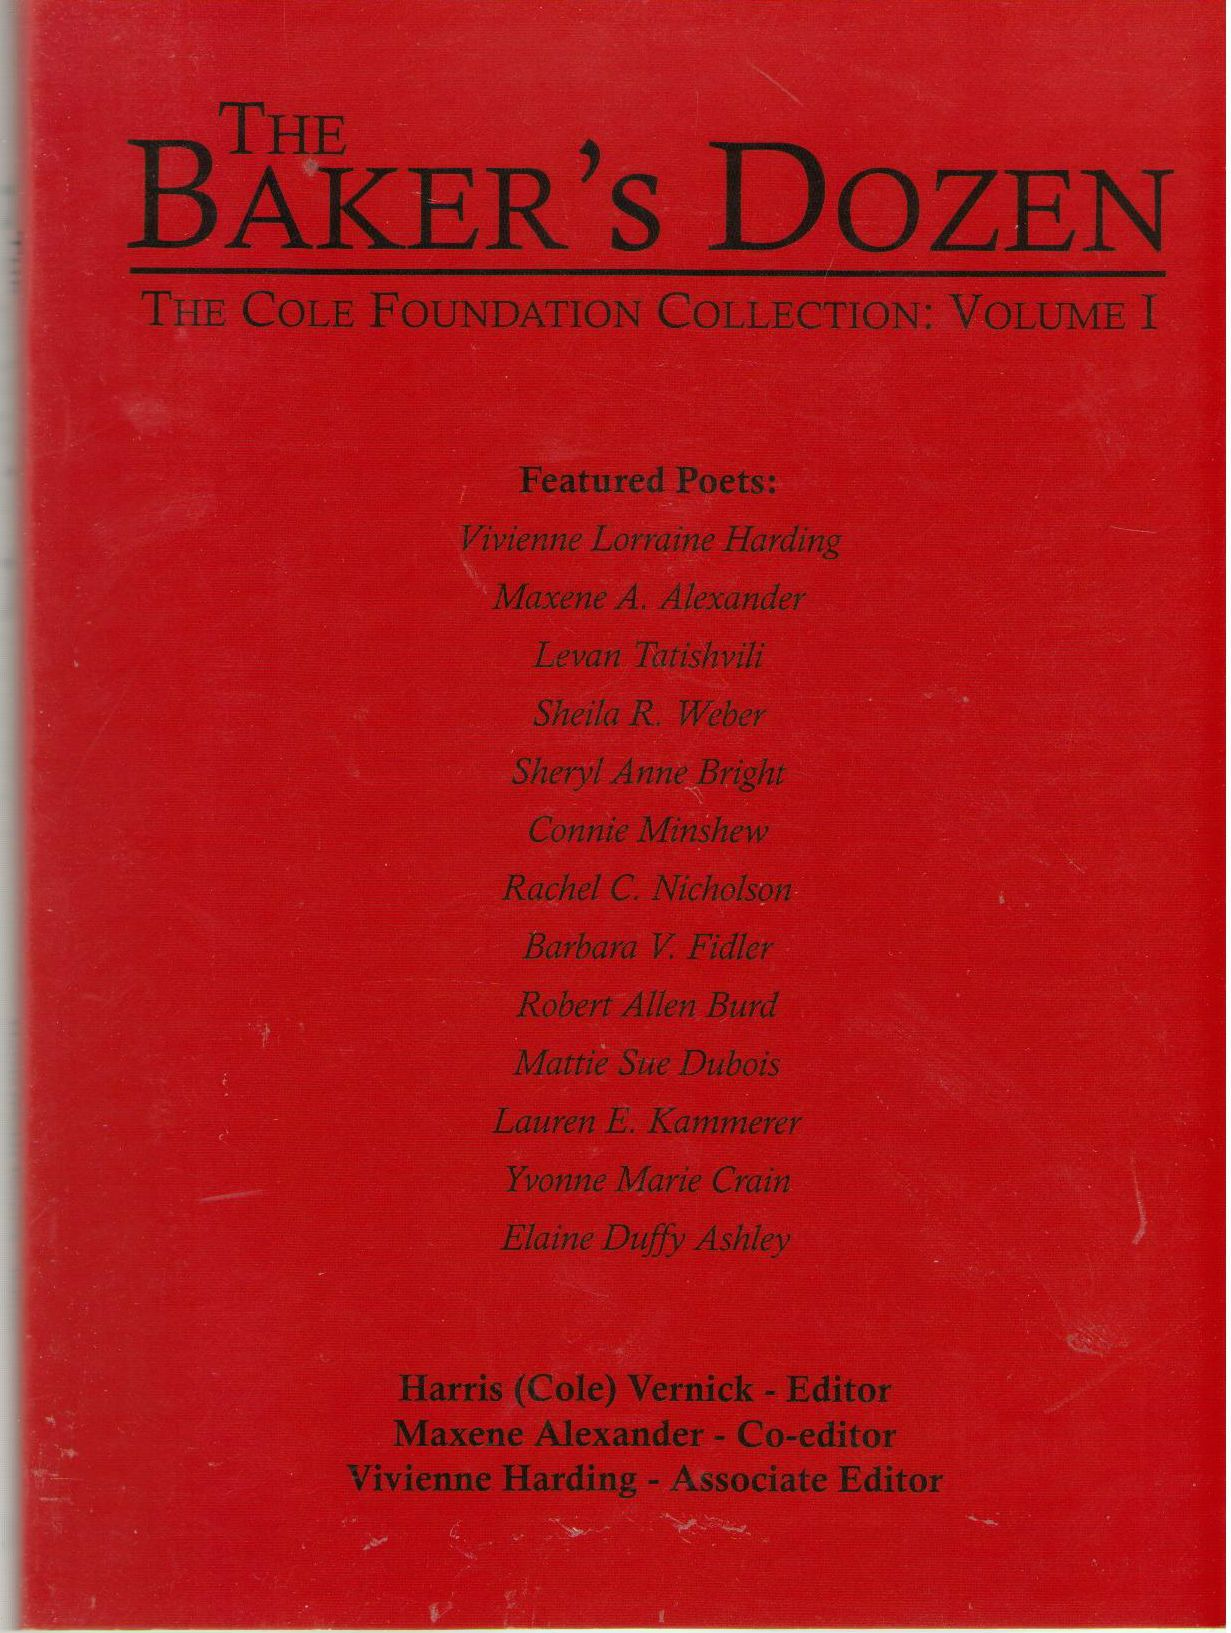 The Baker's Dozen: The Cole Foundation Collection, Vol. 1